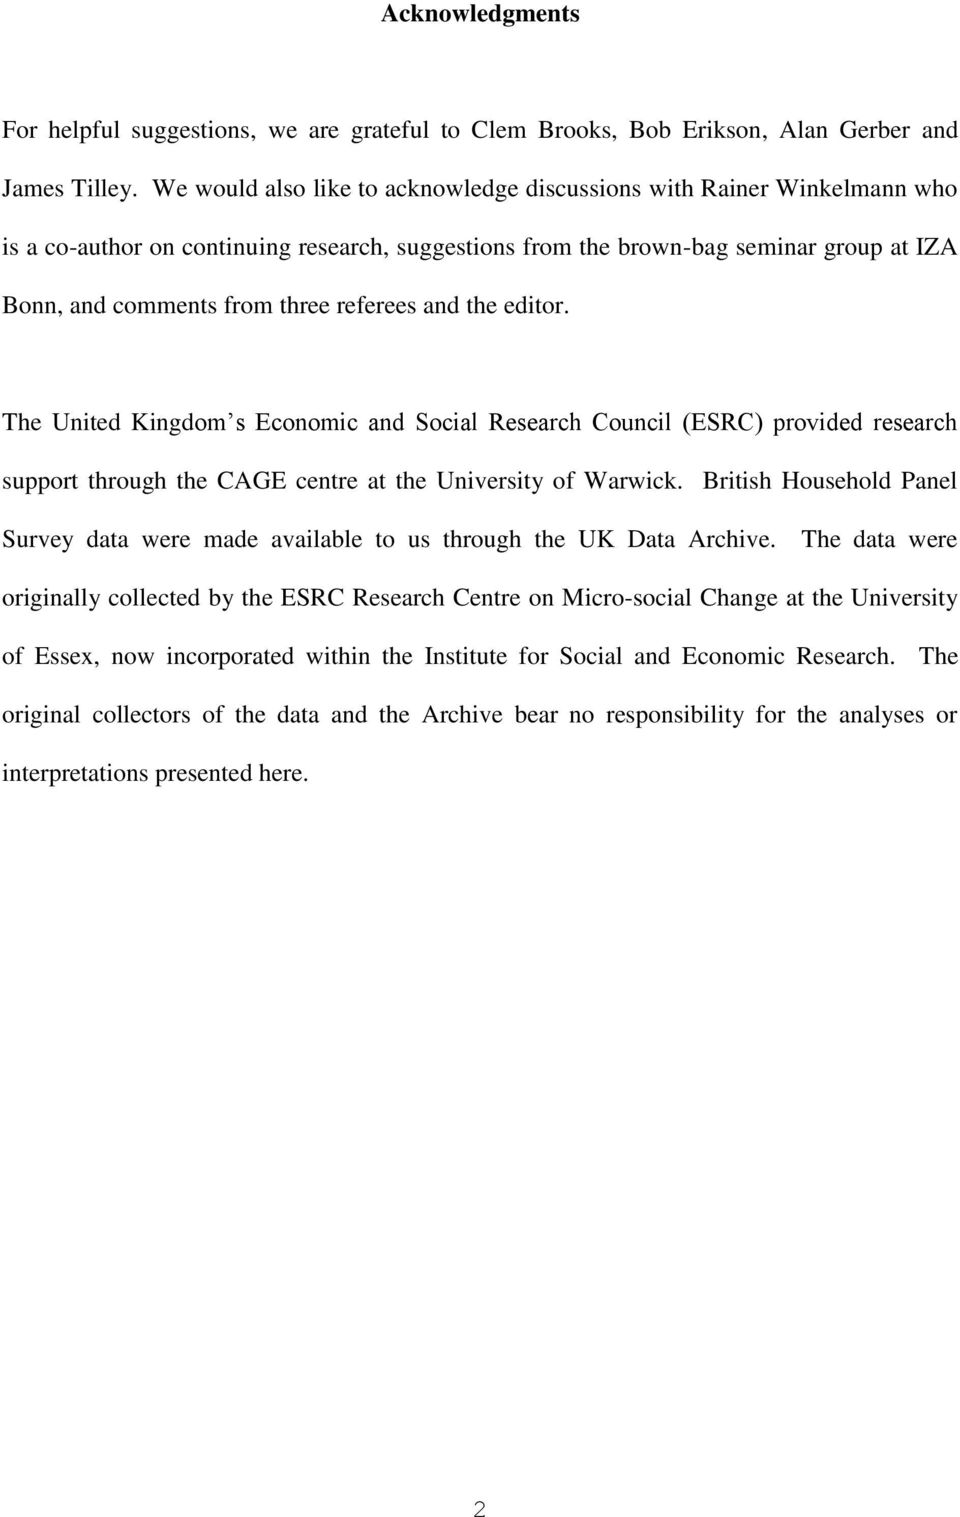 referees and the editor. The United Kingdom s Economic and Social Research Council (ESRC) provided research support through the CAGE centre at the University of Warwick.